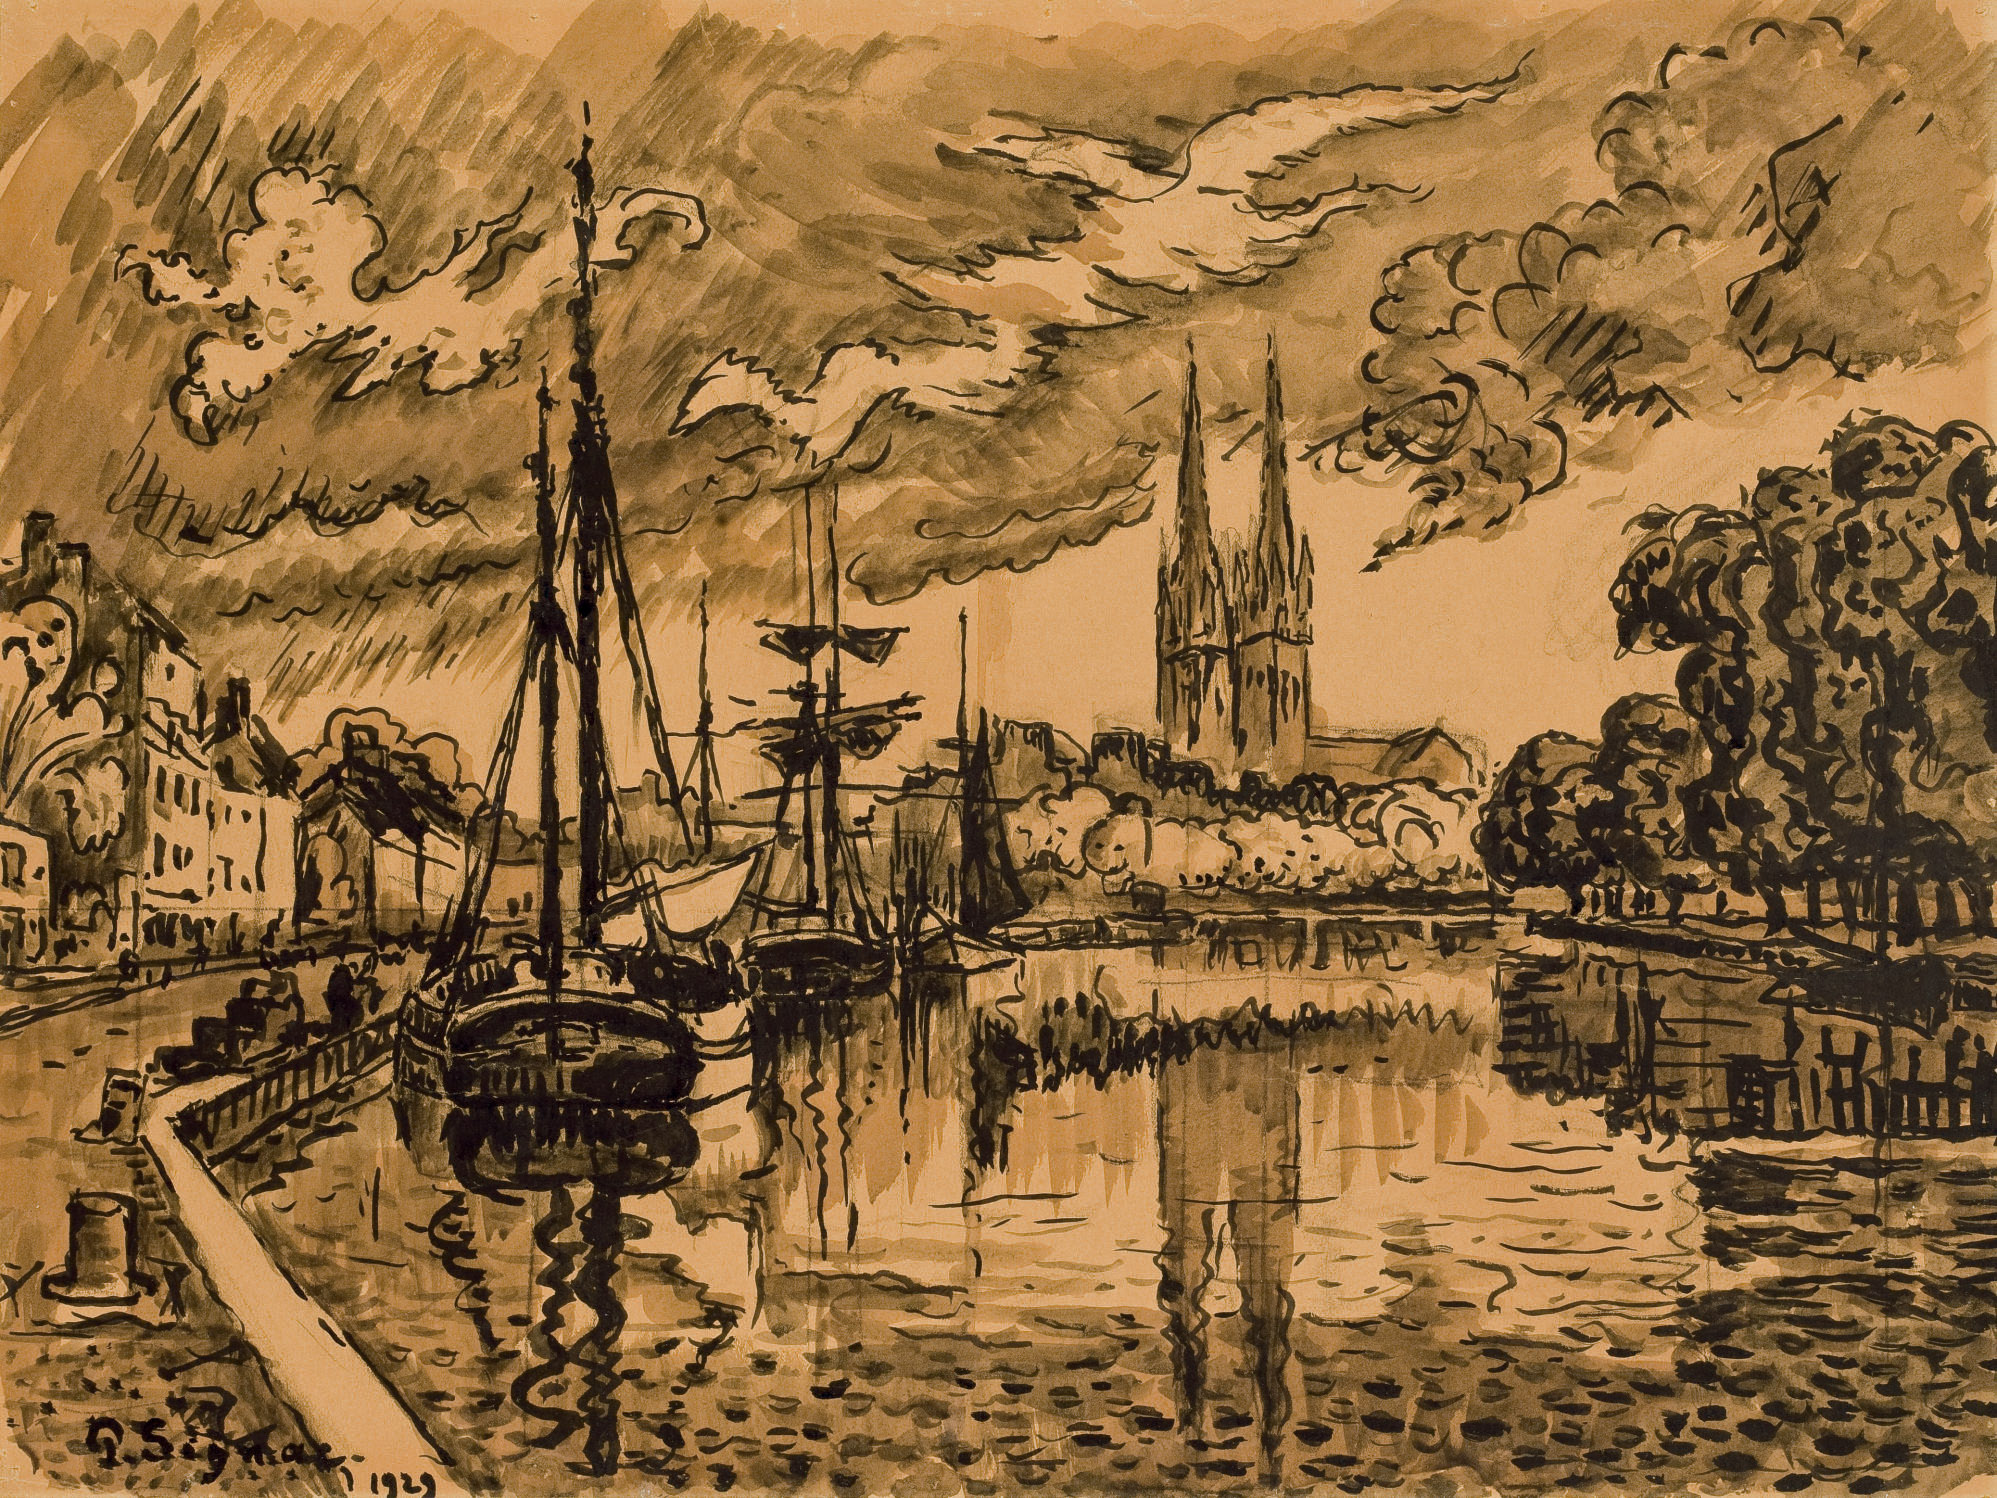 https://www.christies.com/img/LotImages/2010/PAR/2010_PAR_05625_0014_000(paul_signac_etude_pour_lodet_a_quimper).jpg